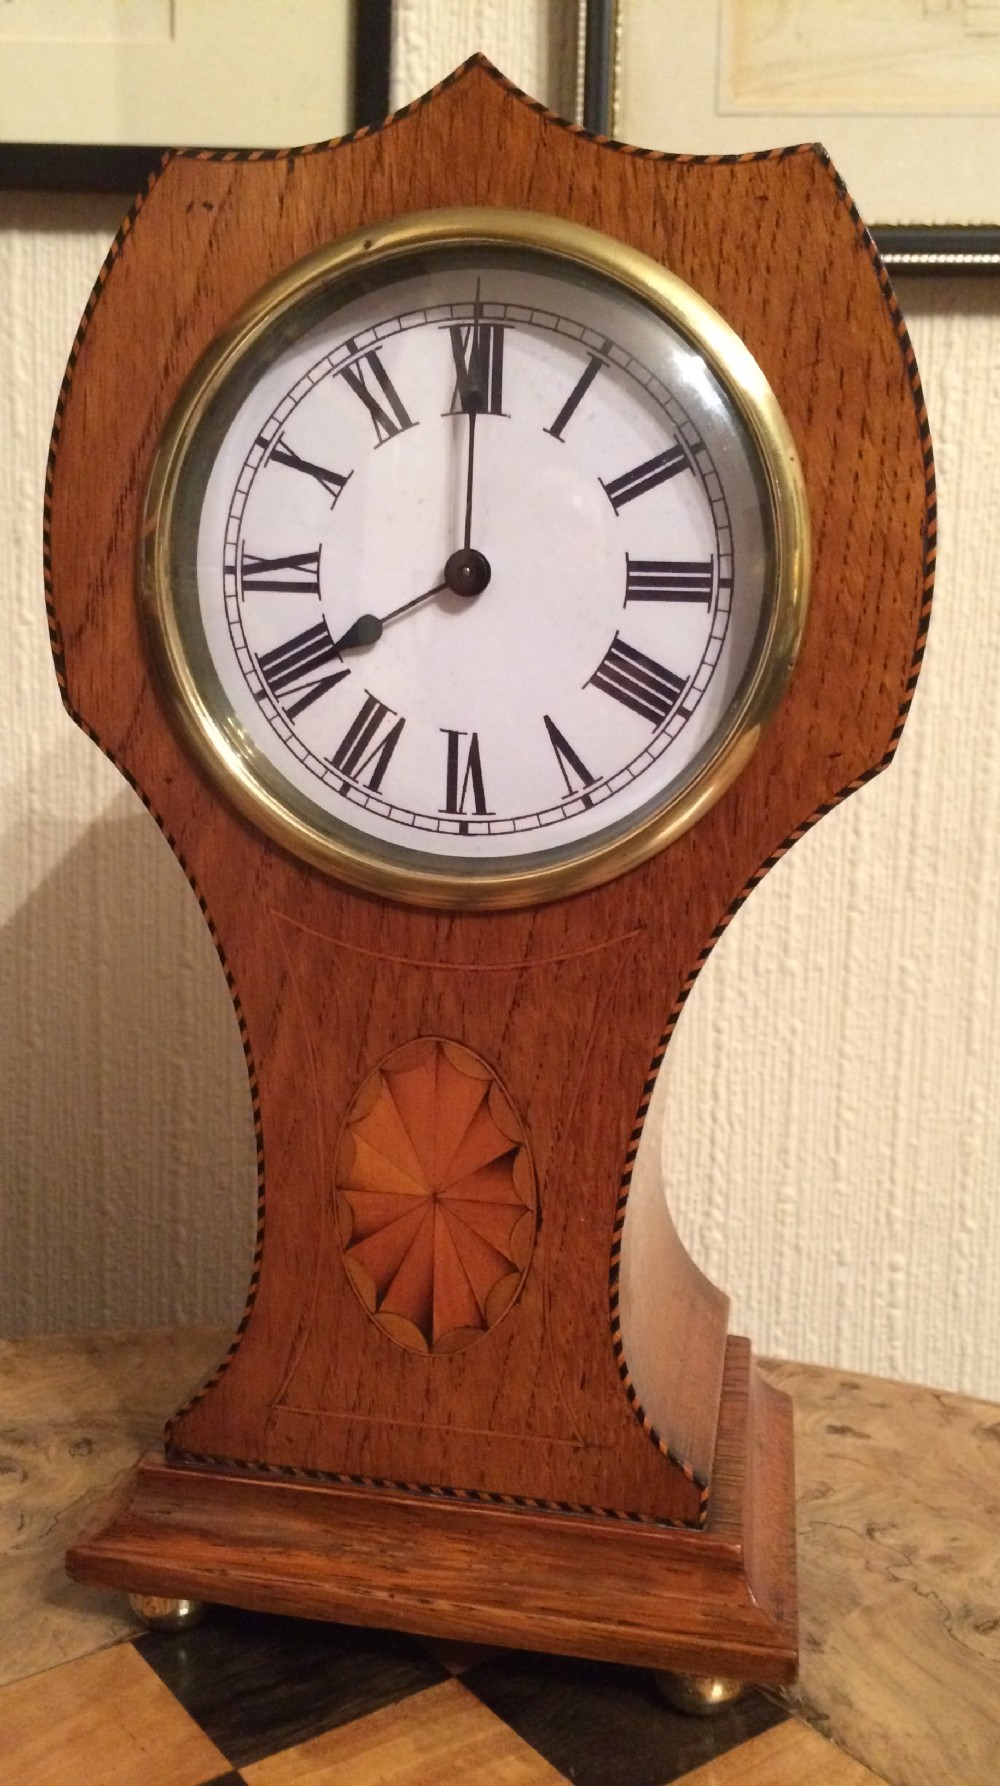 edwardian art nouveau mantel clock